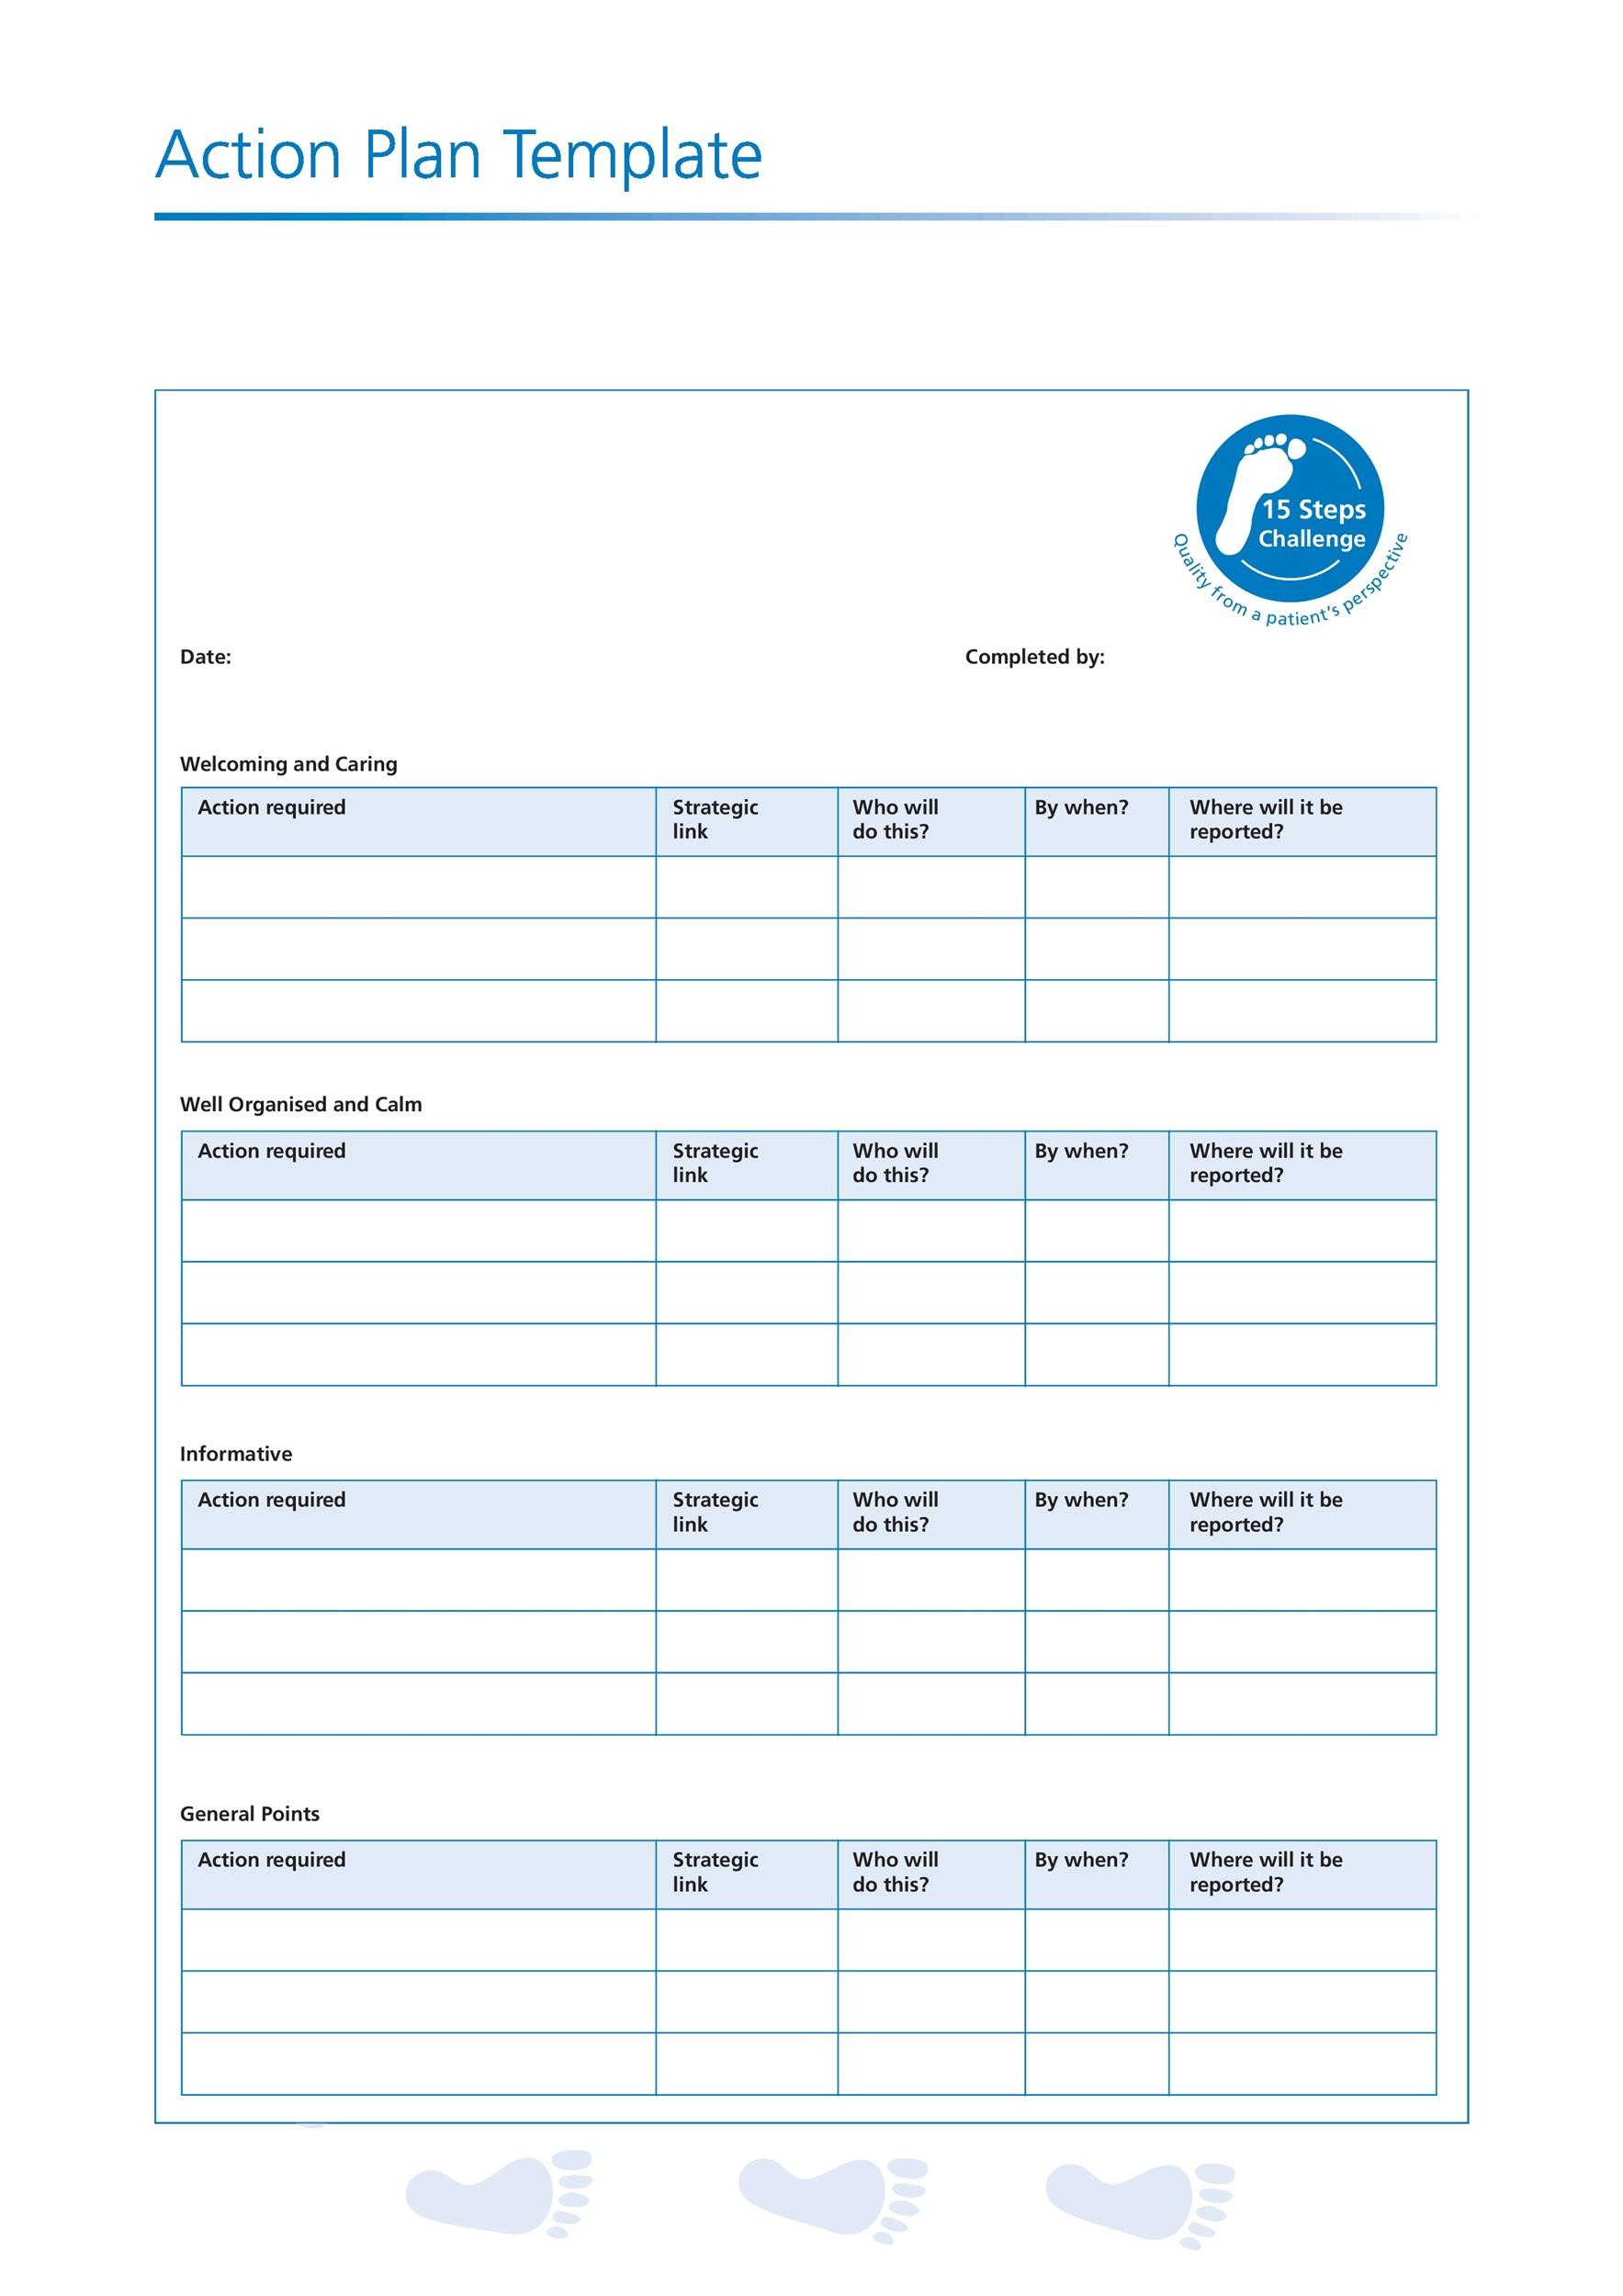 Action Plan Templates  Action Plan Templates Free